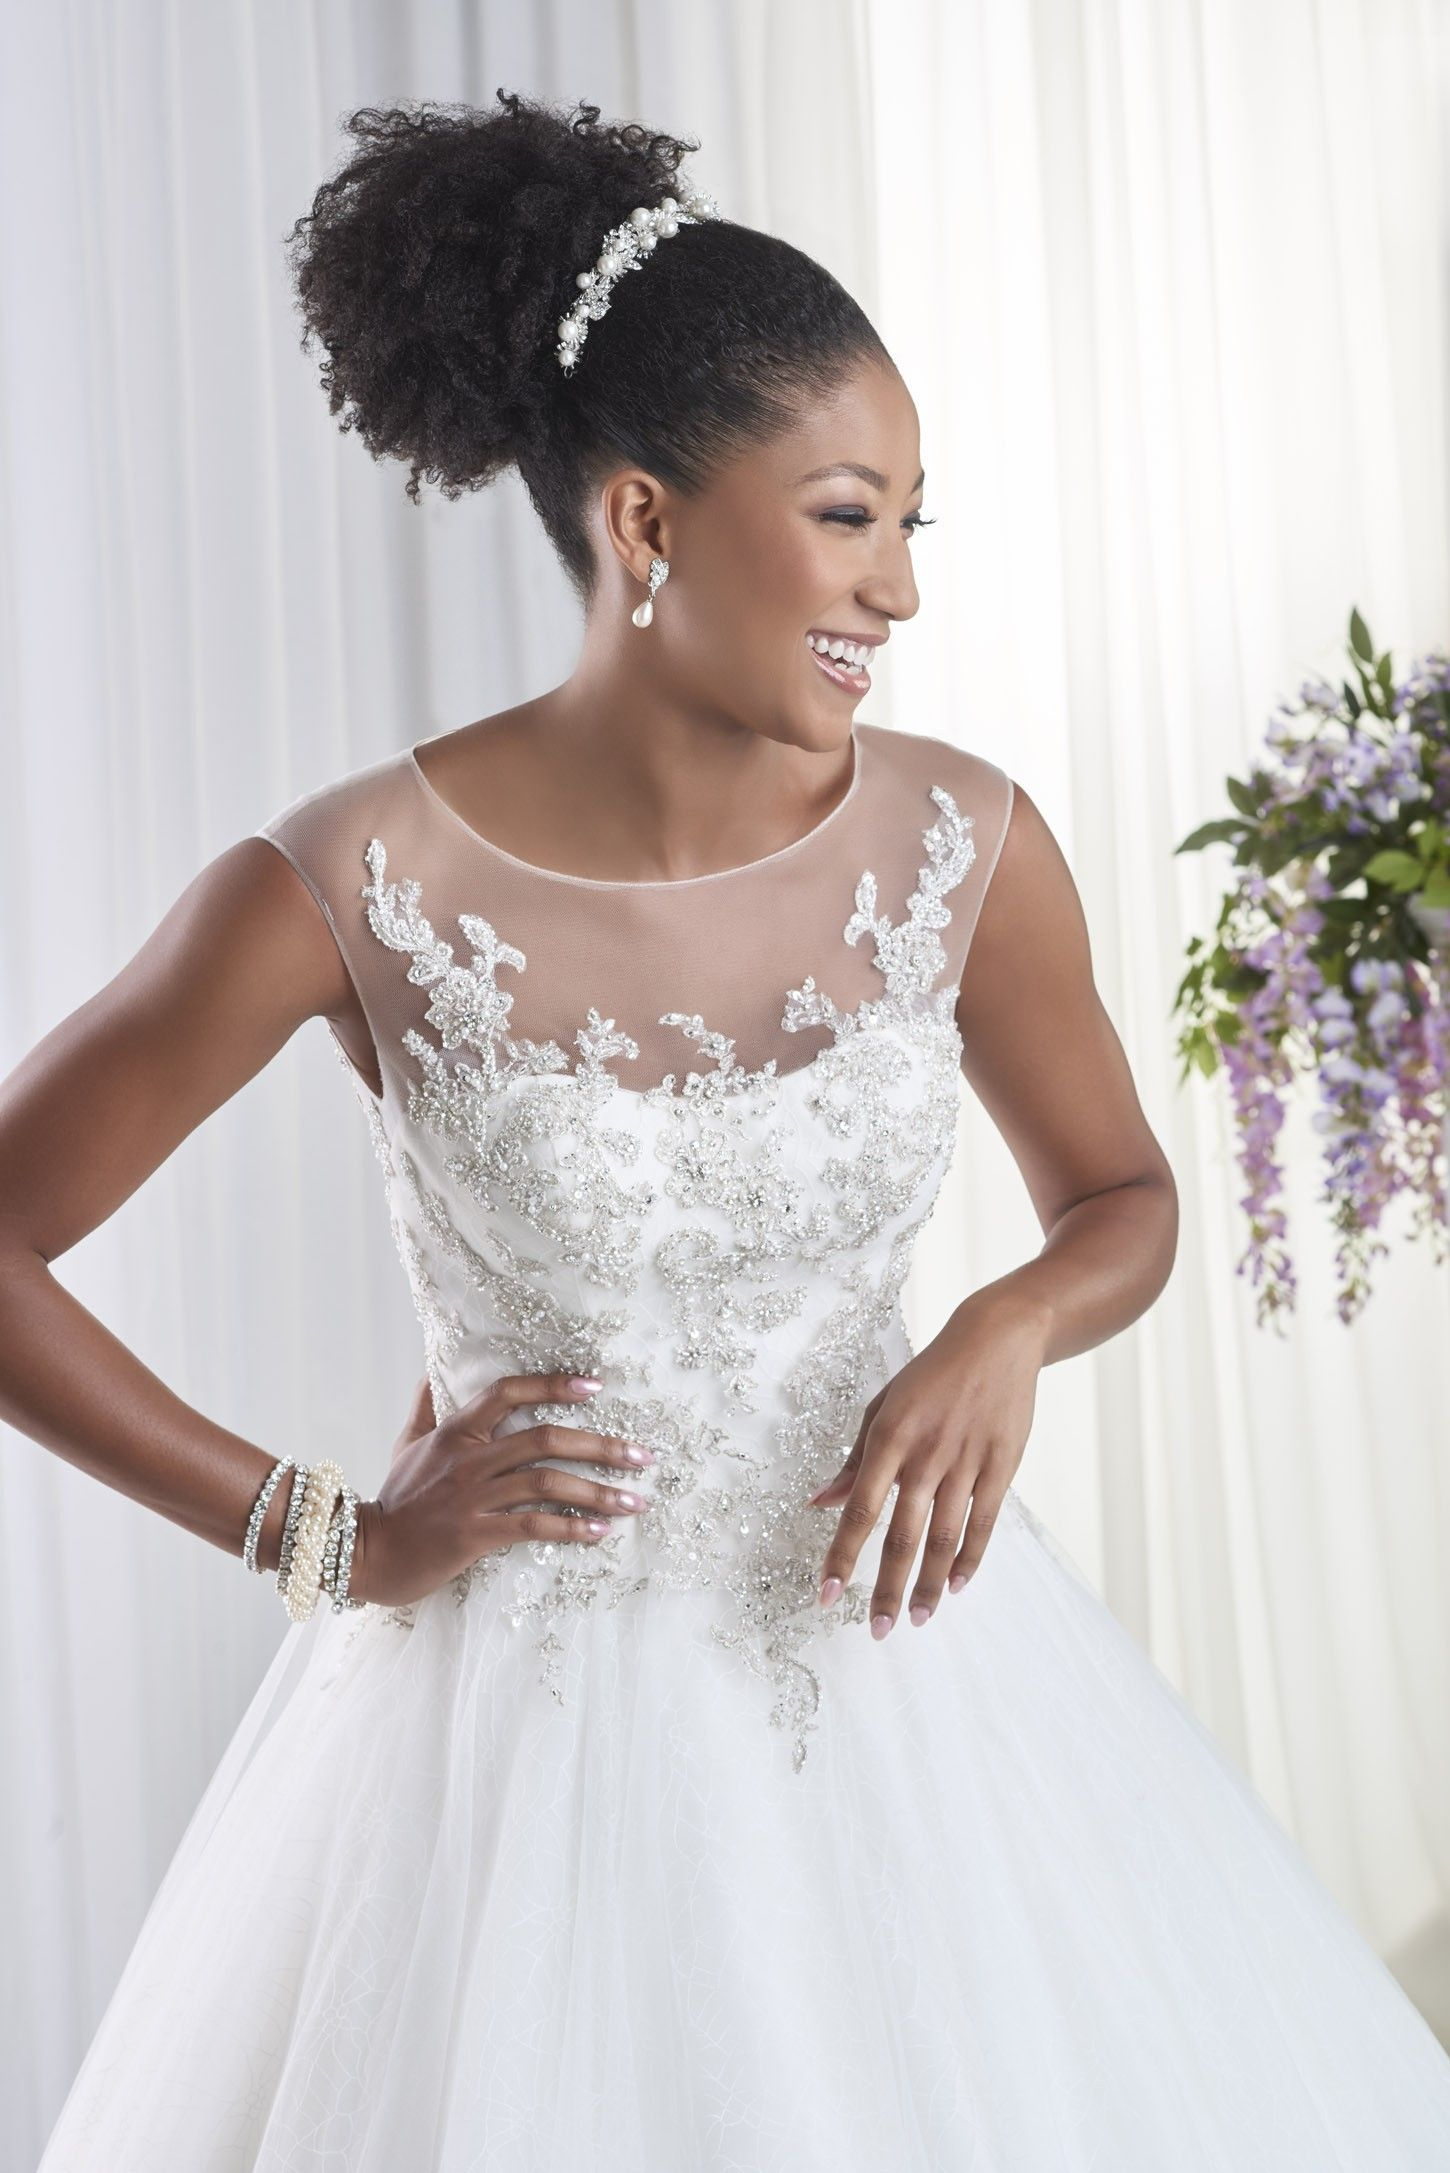 Wedding dresses with rhinestones  Product Name   Wedding Dresses  Bonny Bridal   BONNY